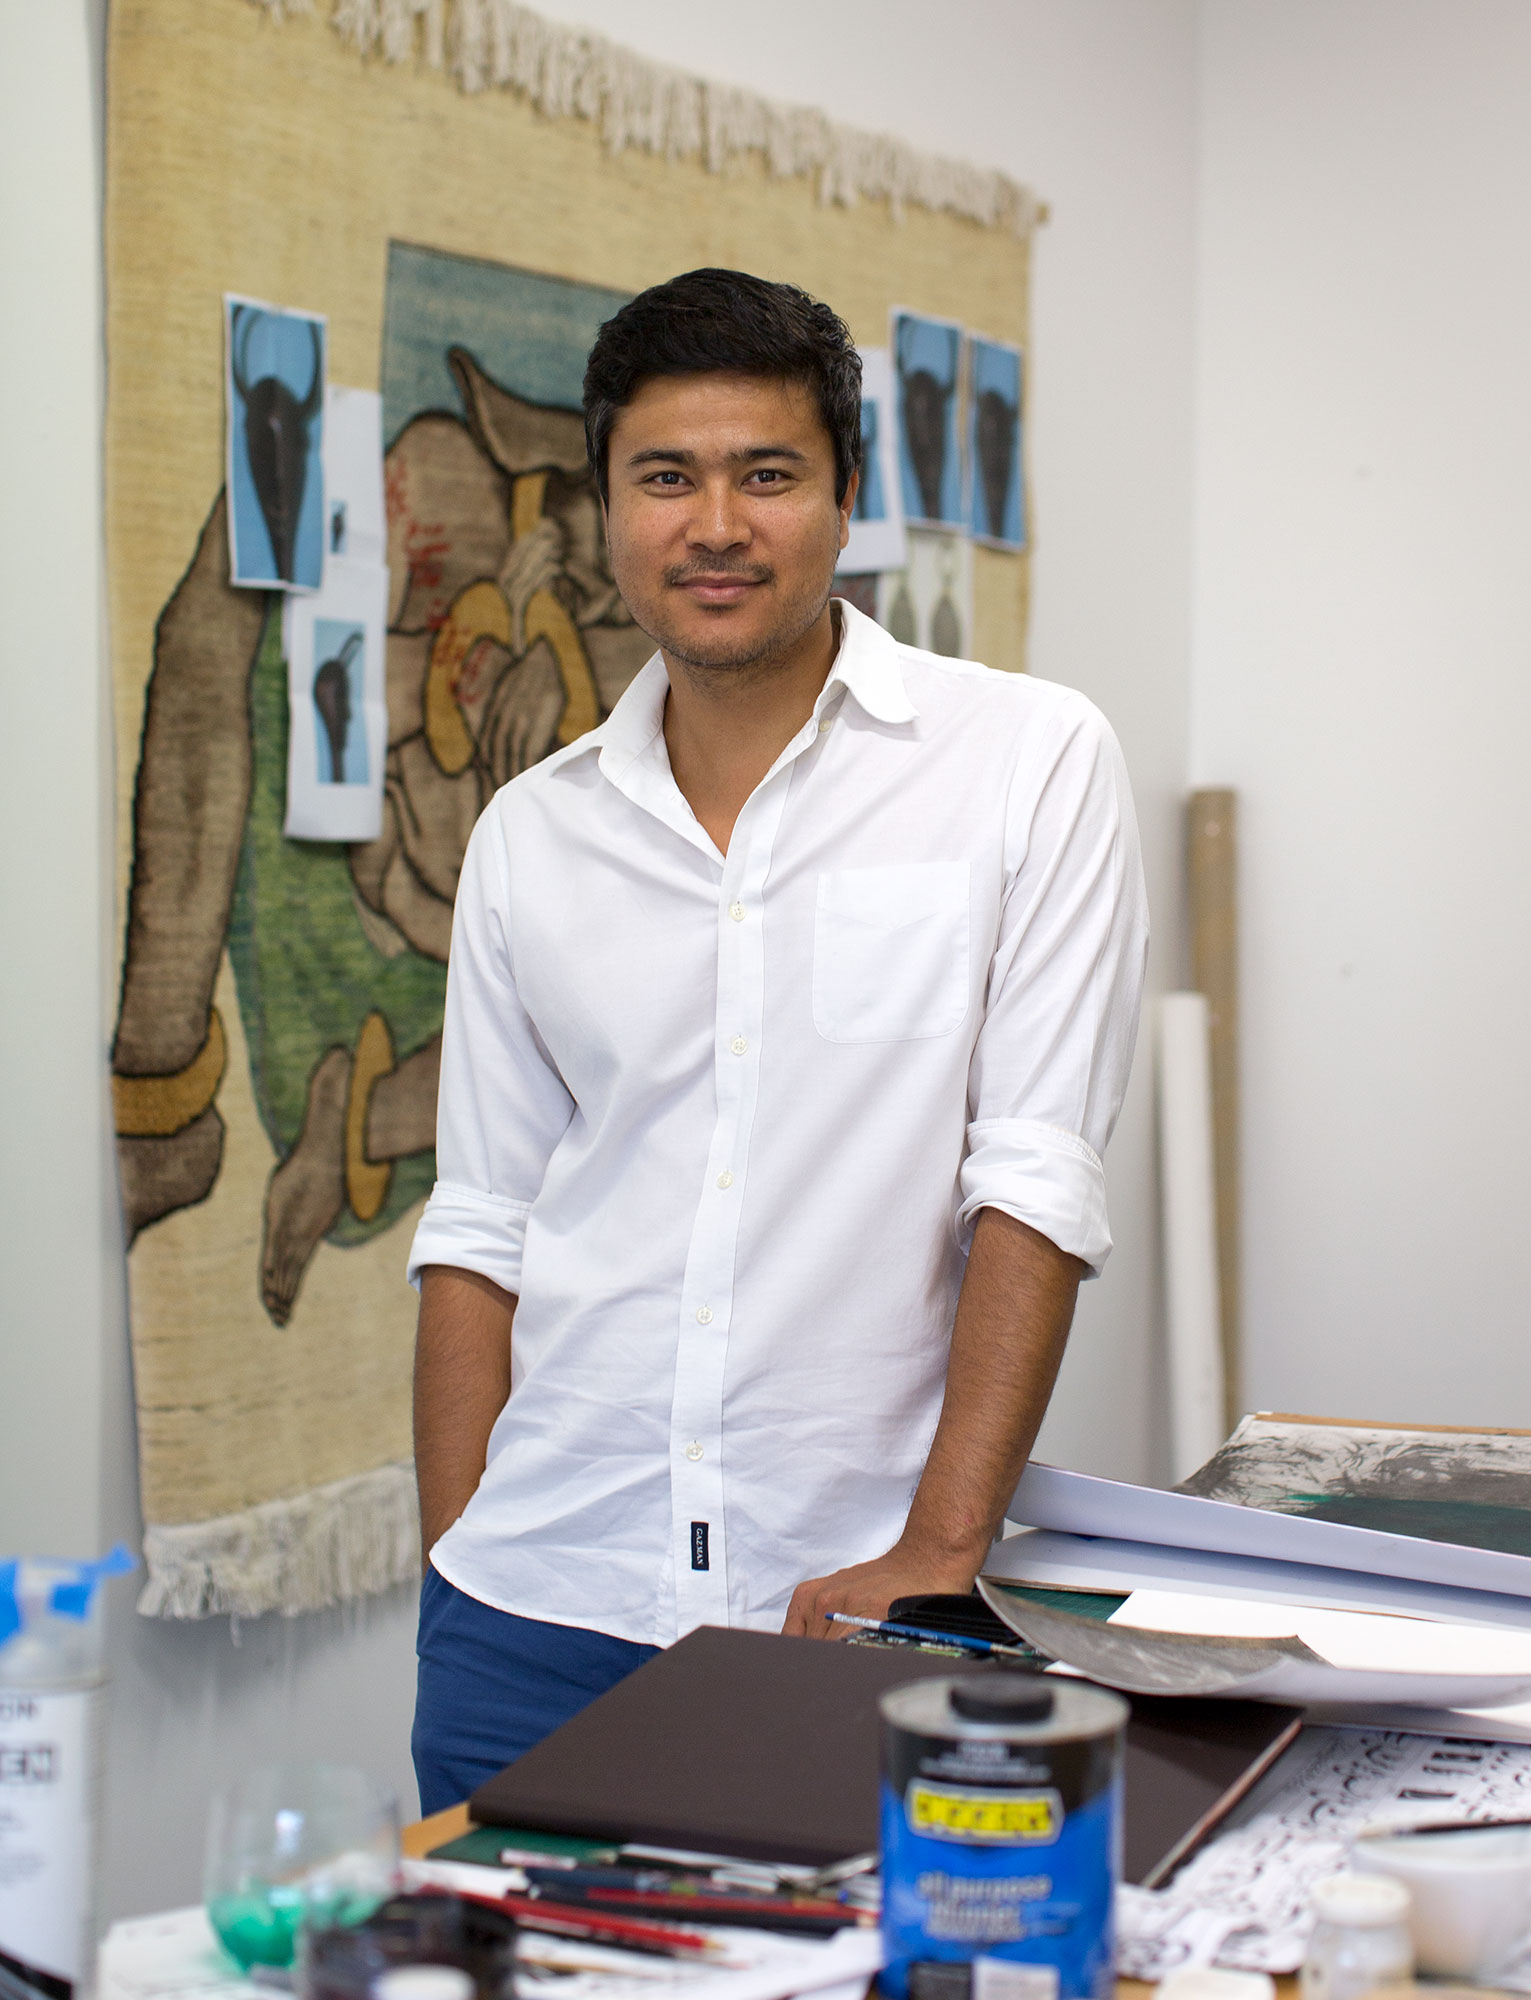 2015 One Year Studio Artist Khadim Ali. Photo: Jessica Maurer